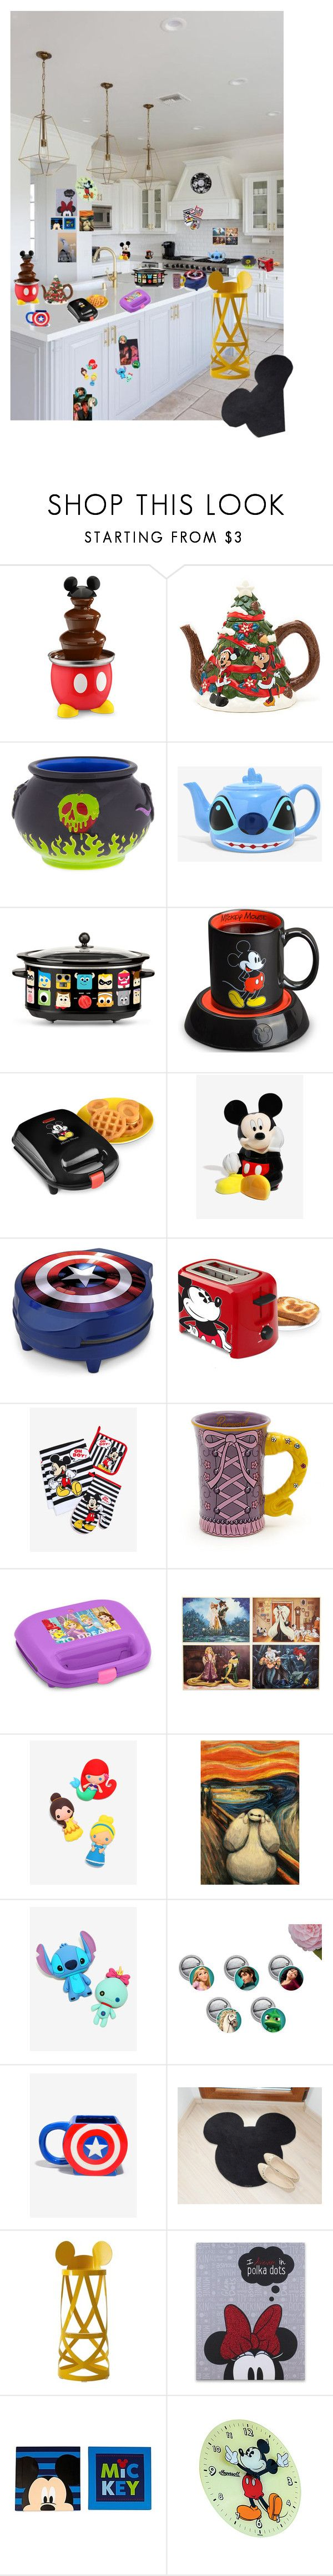 """Disney Kitchen"" by gailgoo ❤ liked on Polyvore featuring interior, interiors, interior design, home, home decor, interior decorating, Disney, Marvel, Cappellini and kitchen"